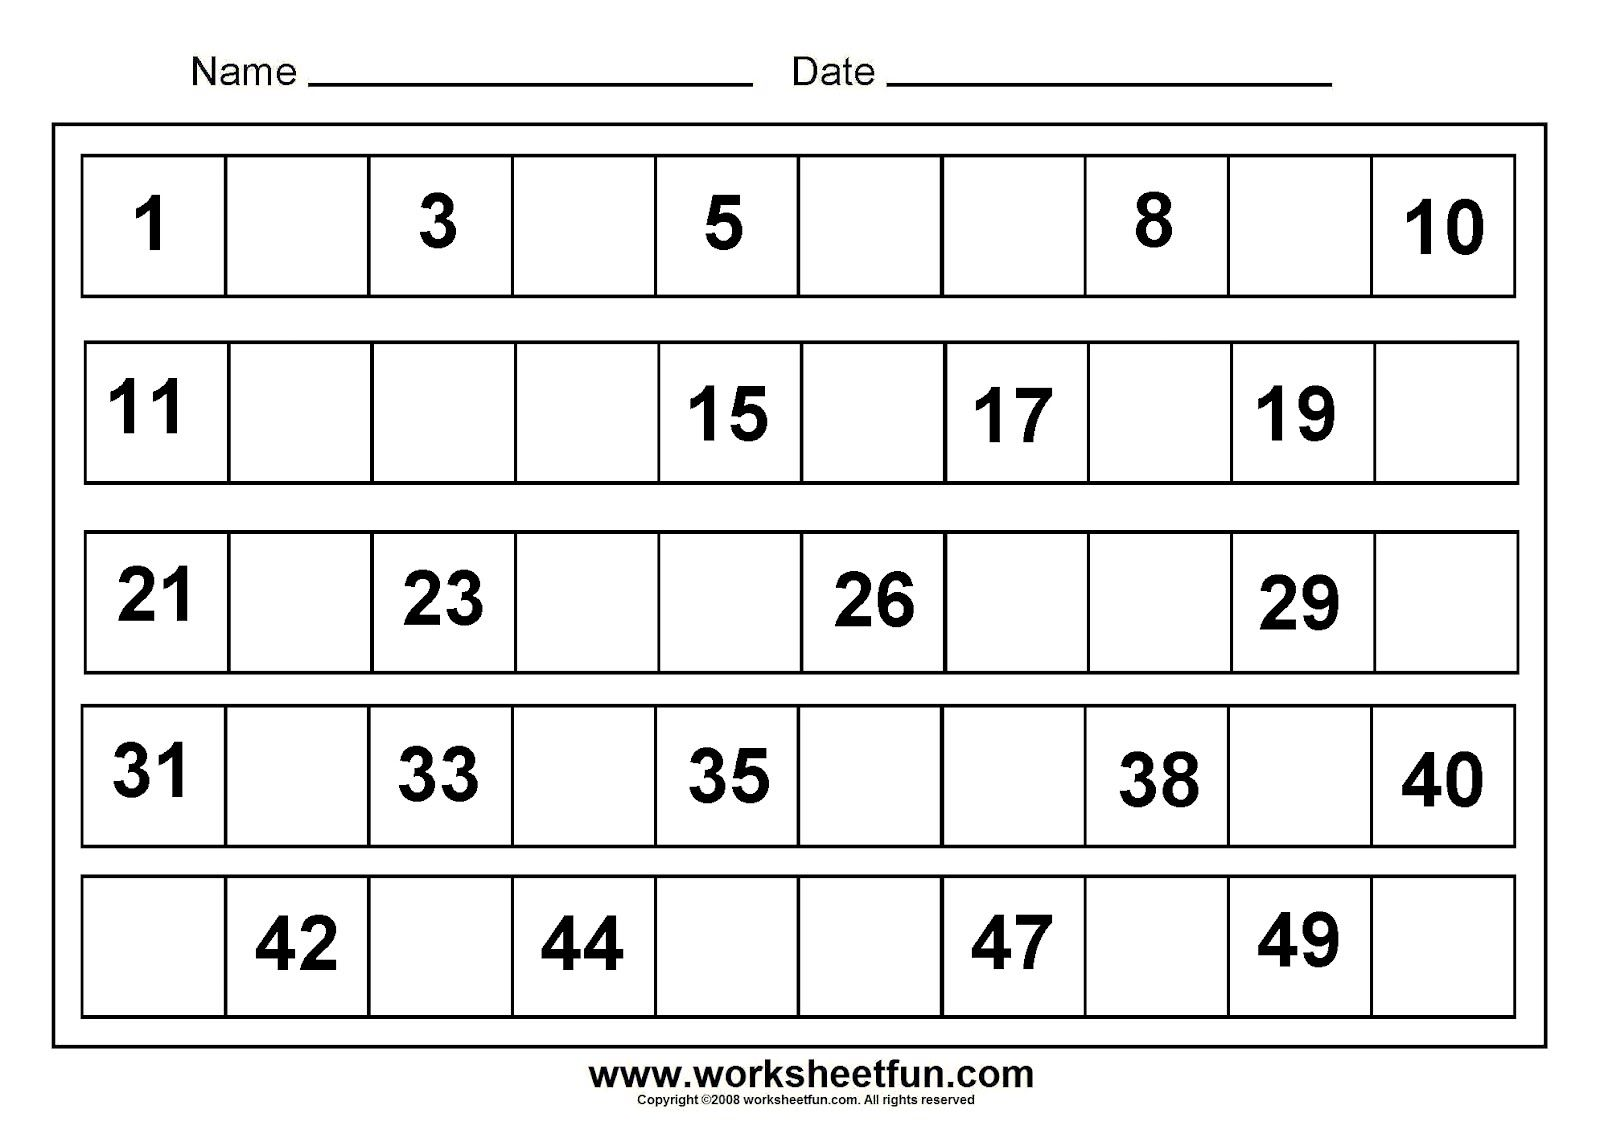 math worksheet : 1000 images about work sheets on pinterest  math worksheets  : Kindergarden Math Worksheets